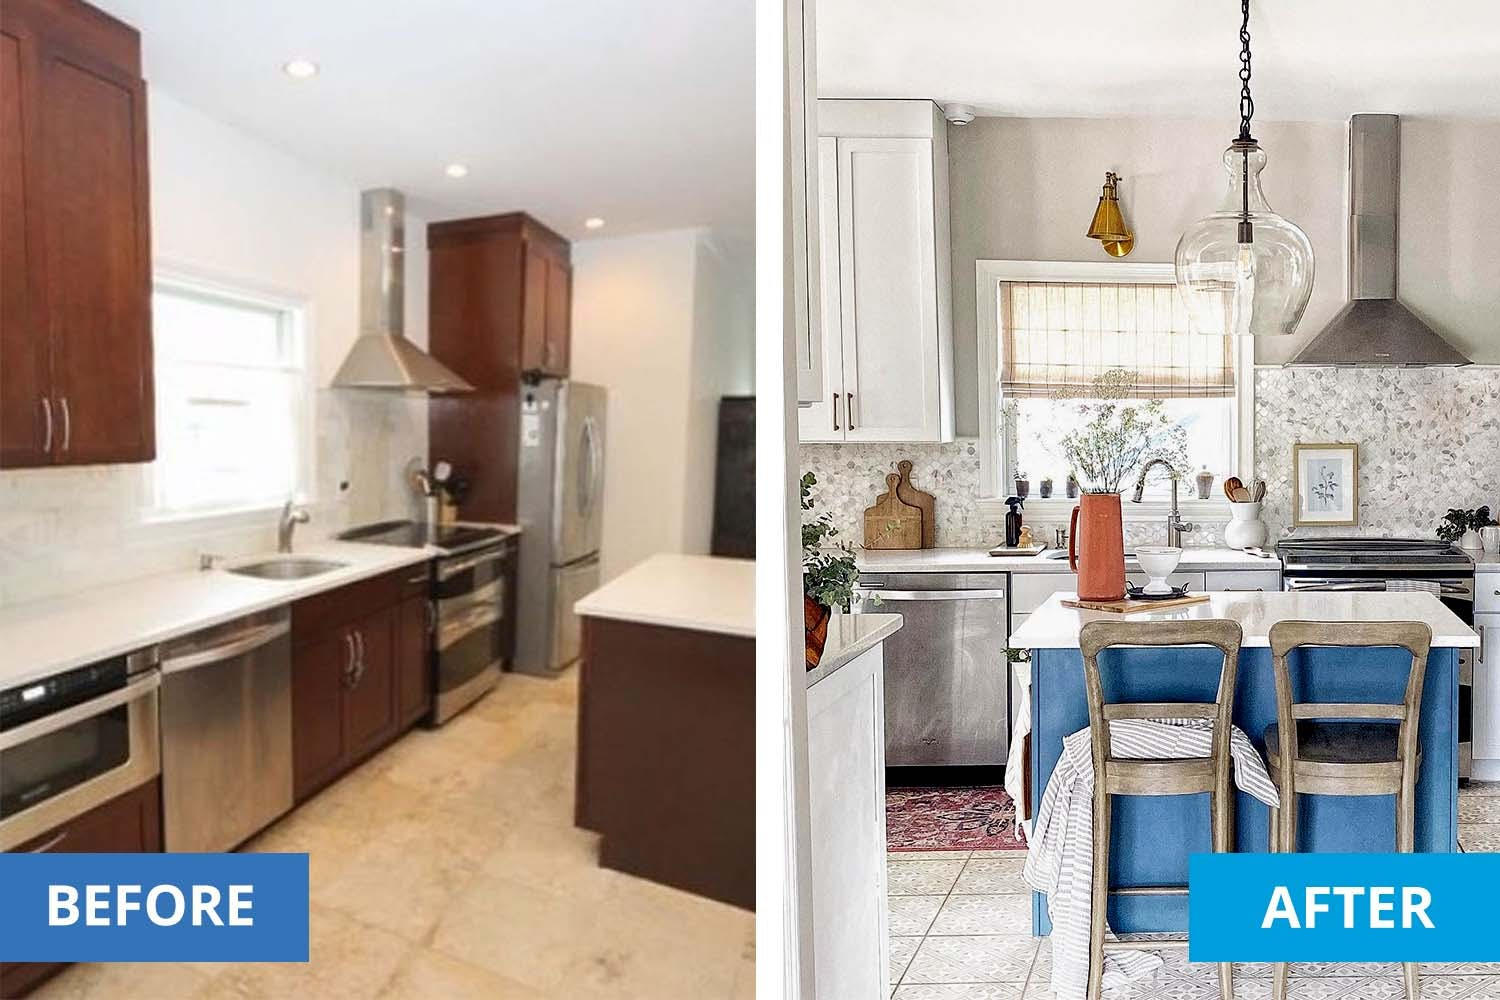 left is a before photo of a basic kitchen with brown cabinets. Right shows after the kitchen makeover with white cabinets, new backsplash and window treatments.